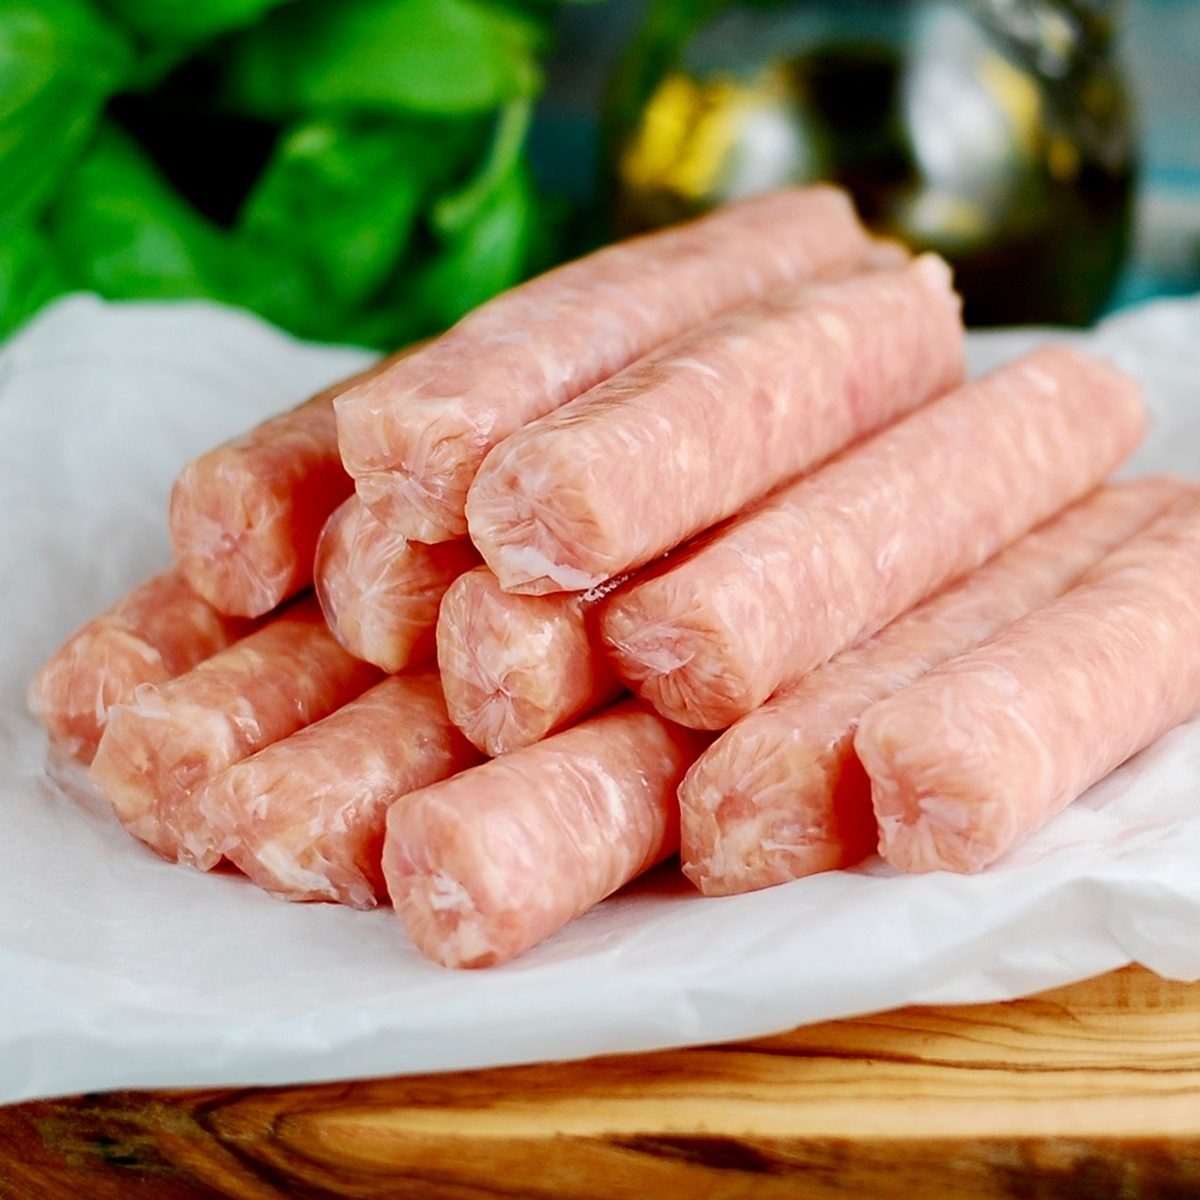 Raw breakfast sausages on a wooden board, uncooked sausages for breakfast ; Shutterstock ID 1507042004; Job (TFH, TOH, RD, BNB, CWM, CM): TOH